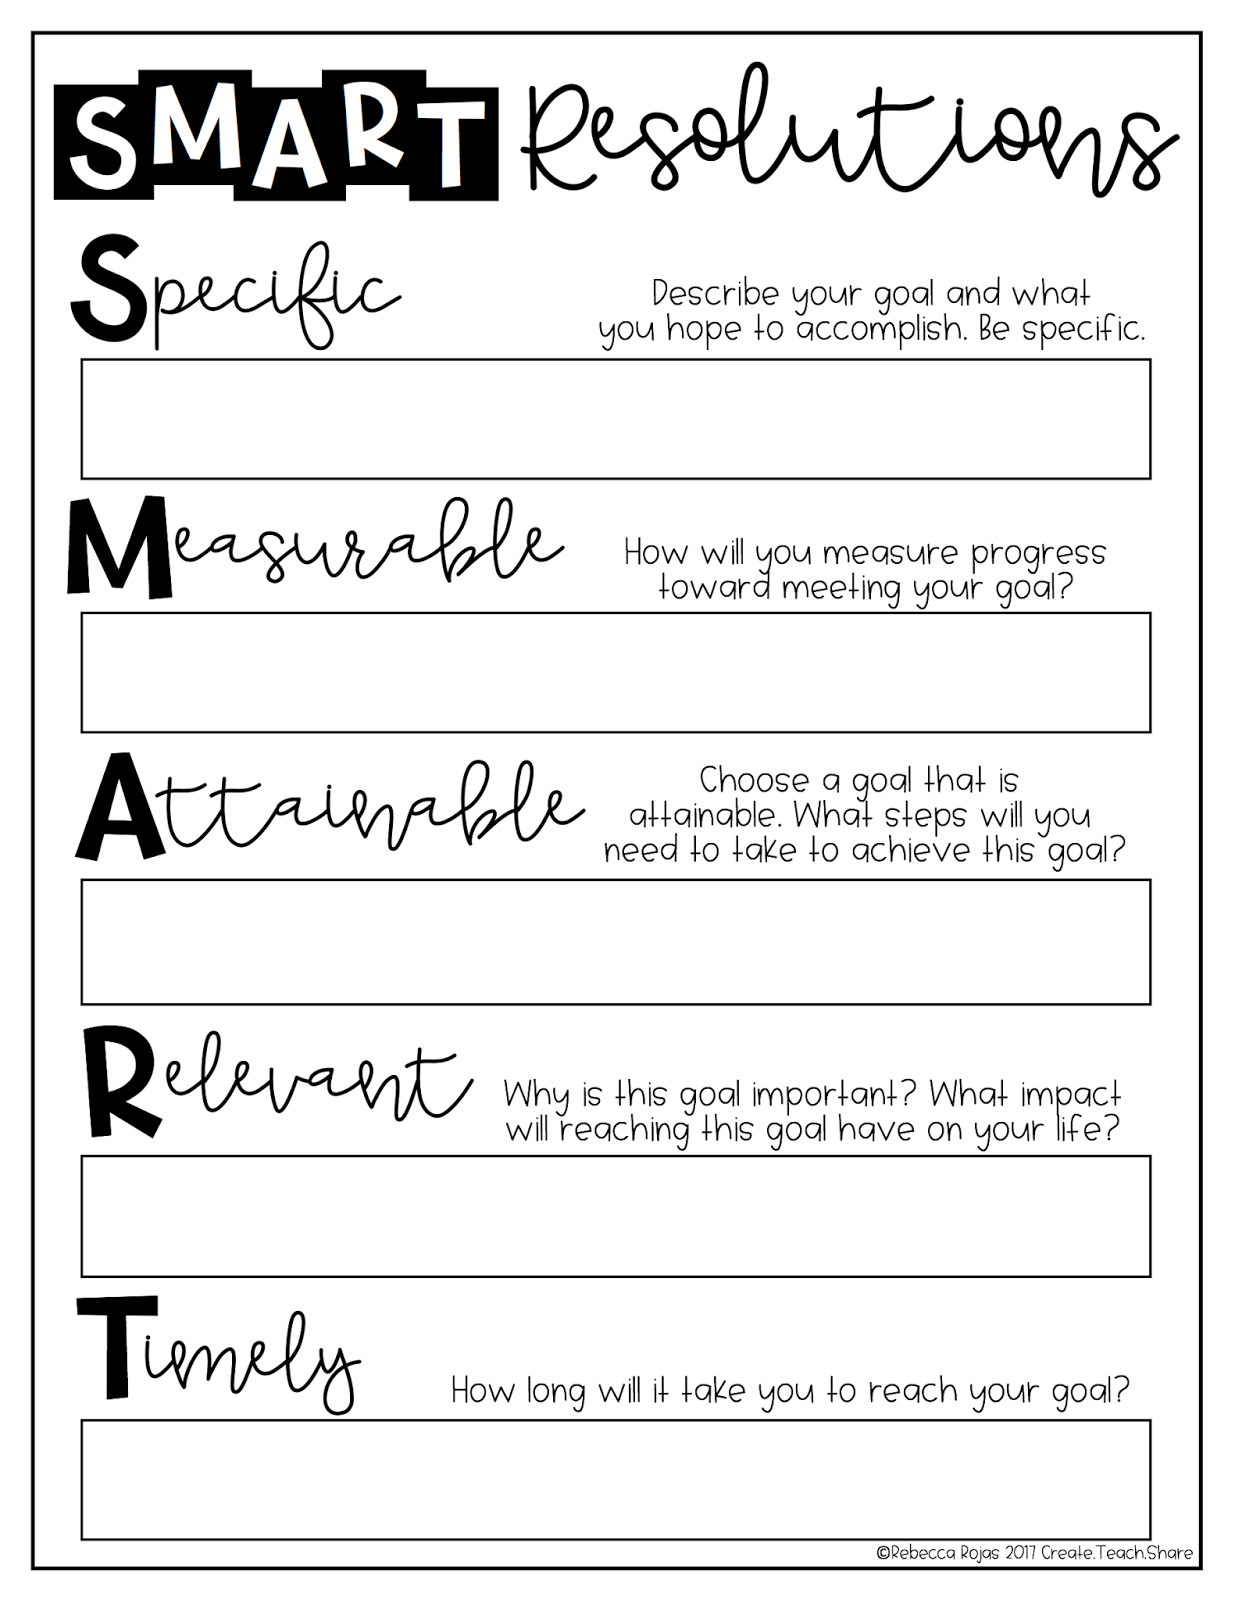 Upper Elementary Snapshots Writing Smart Resolutions For